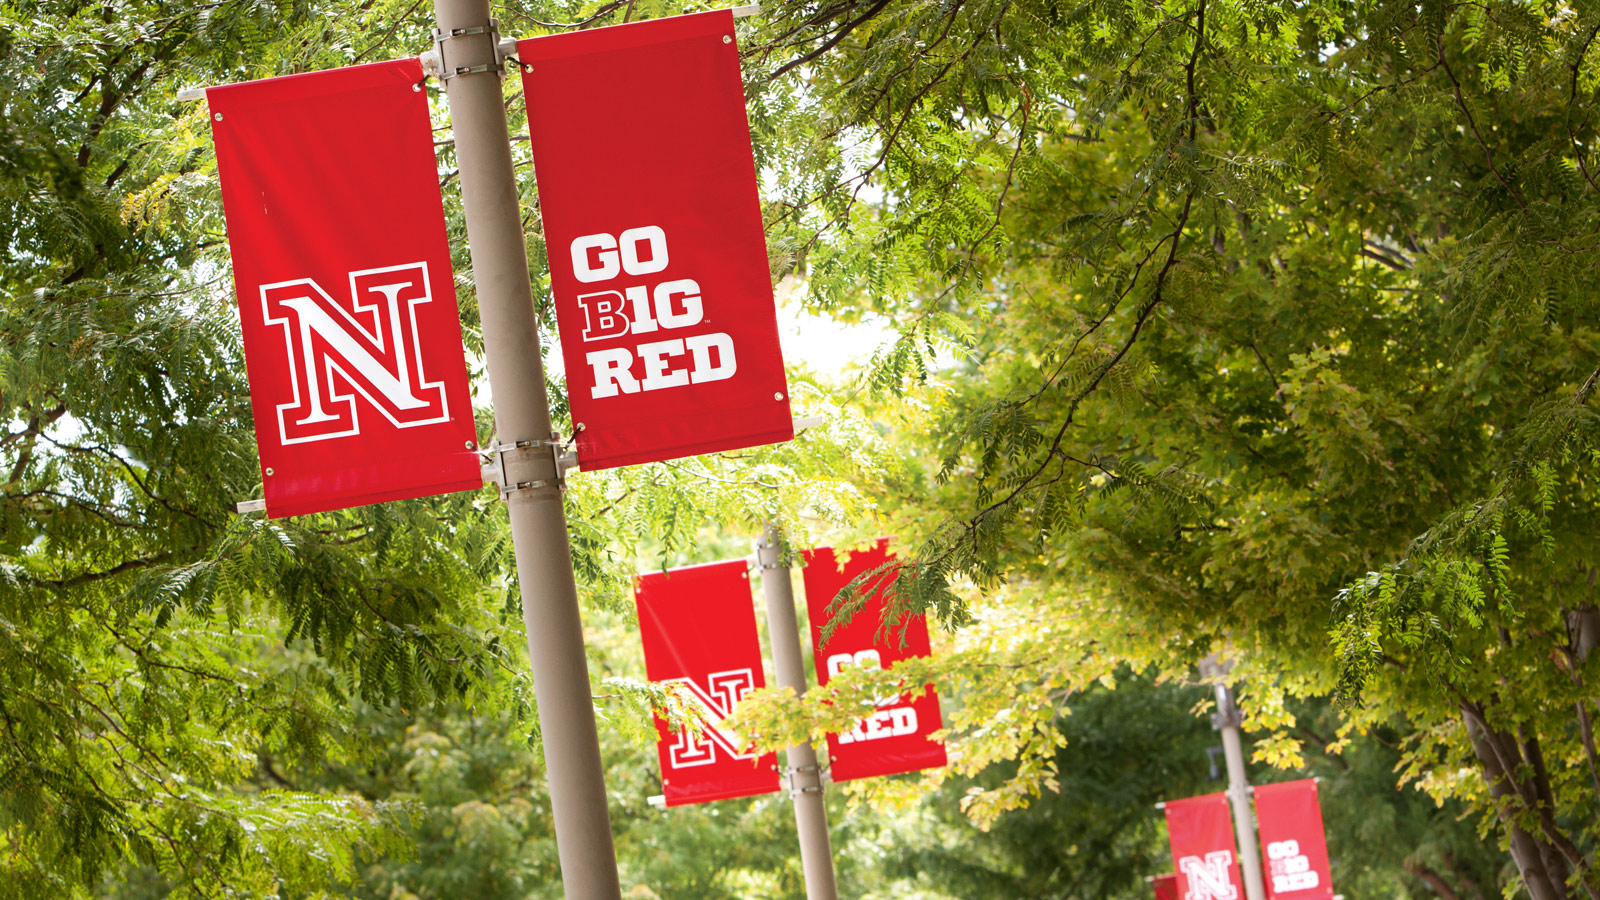 Go Big Red Banners